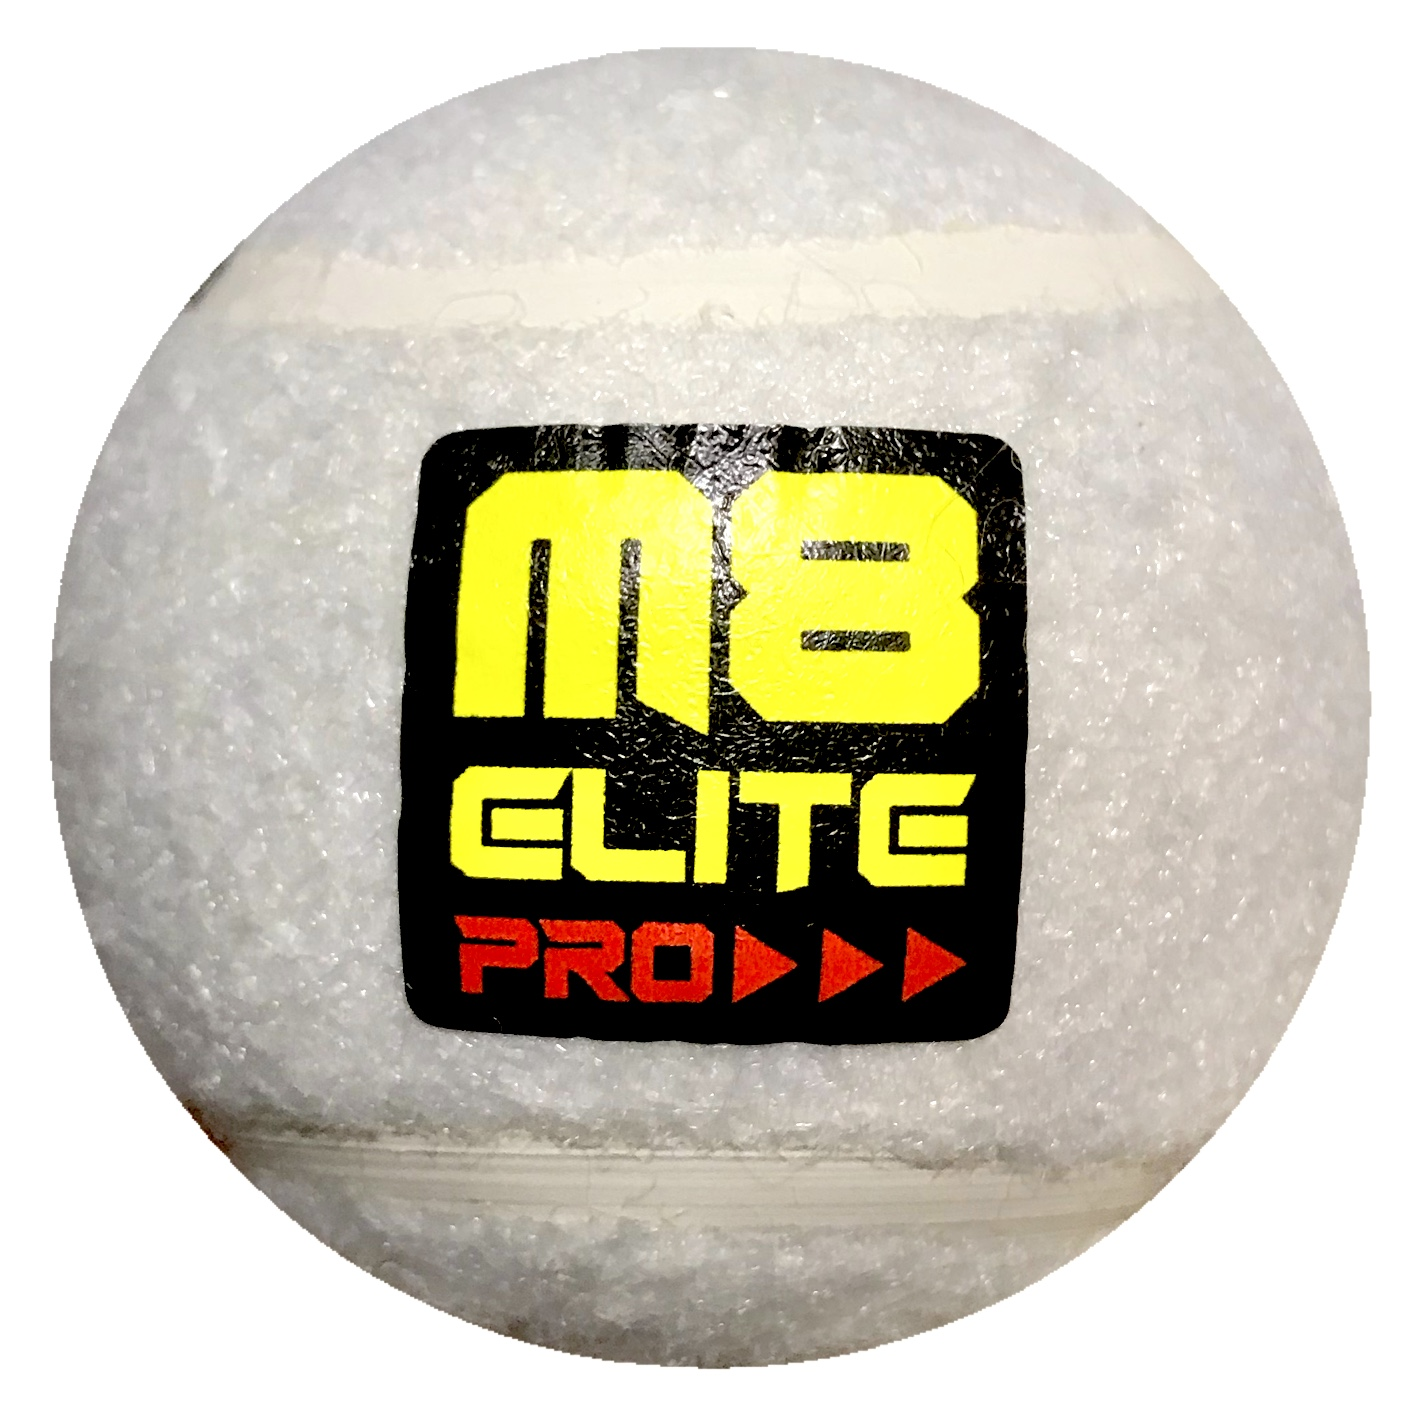 Tennis Ball / Cricket Tape Ball / White Color / International Size & Weight / Professional Tennis Ball / Extremely High Quality Cricket Soft Ball 🎾